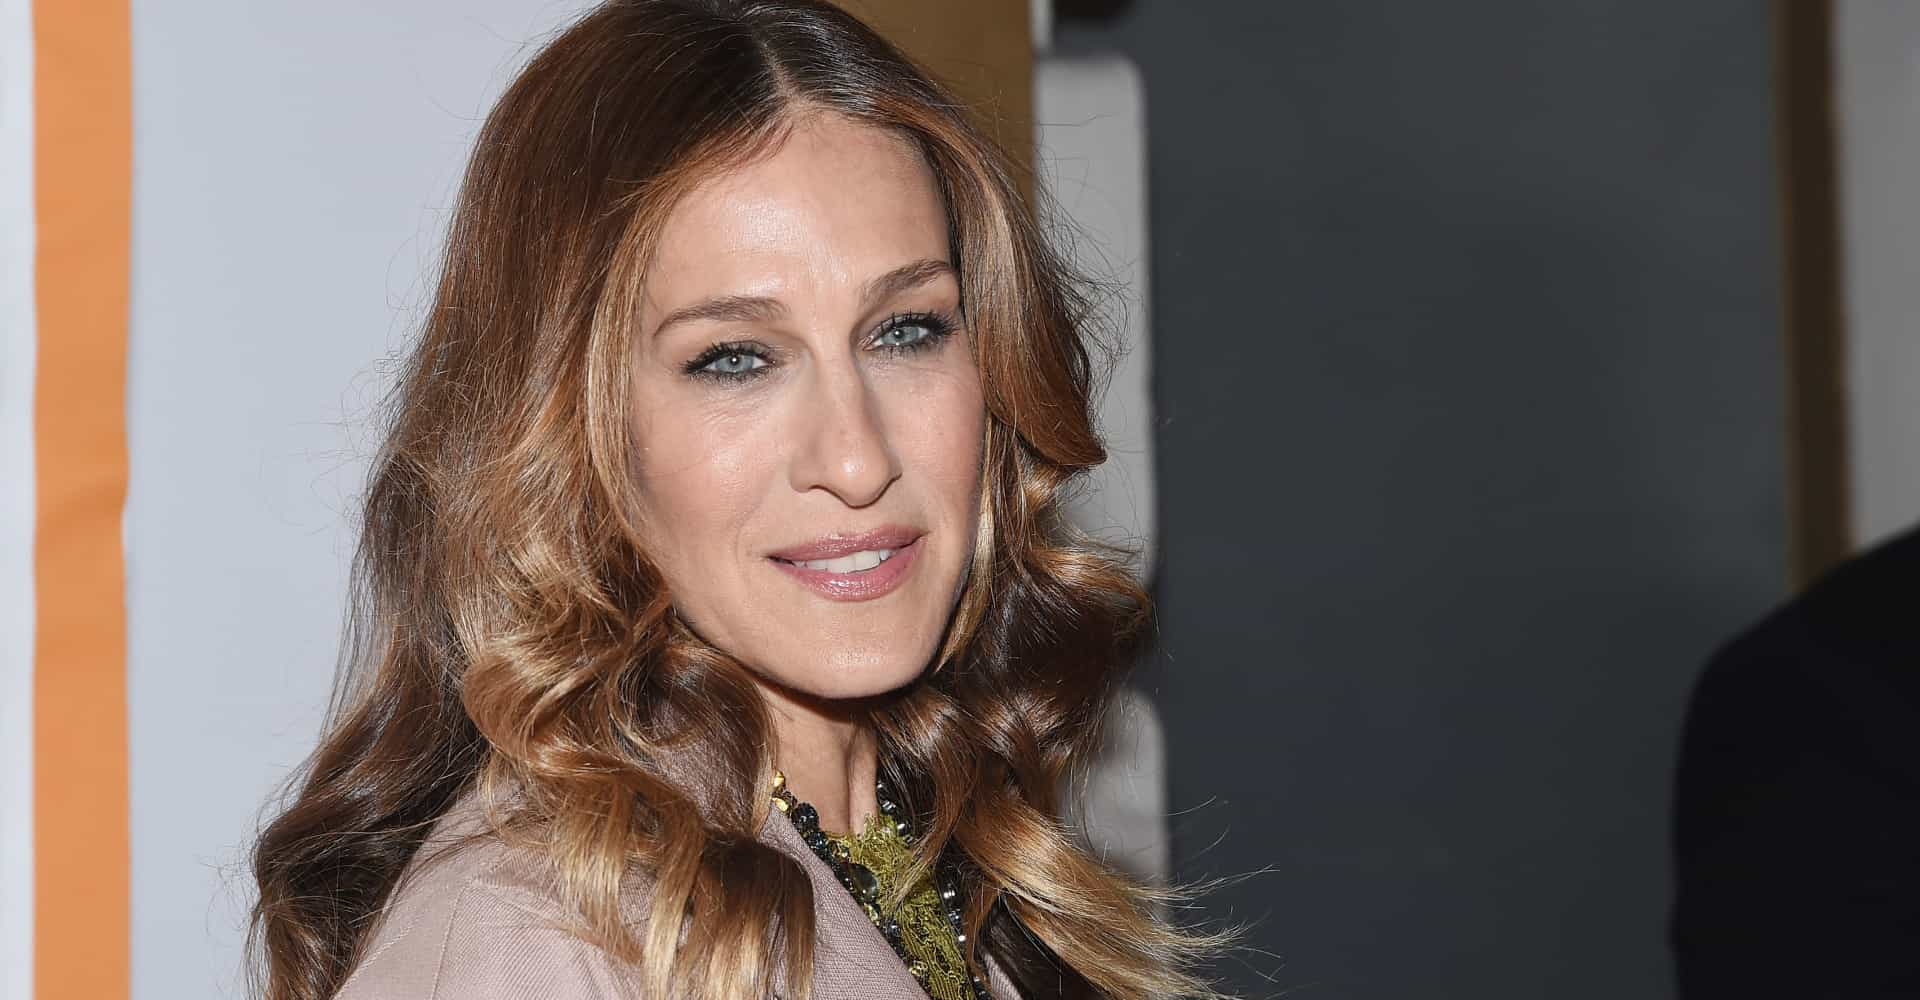 Sarah Jessica Parker attacks 14-year-old in anti-technology rant